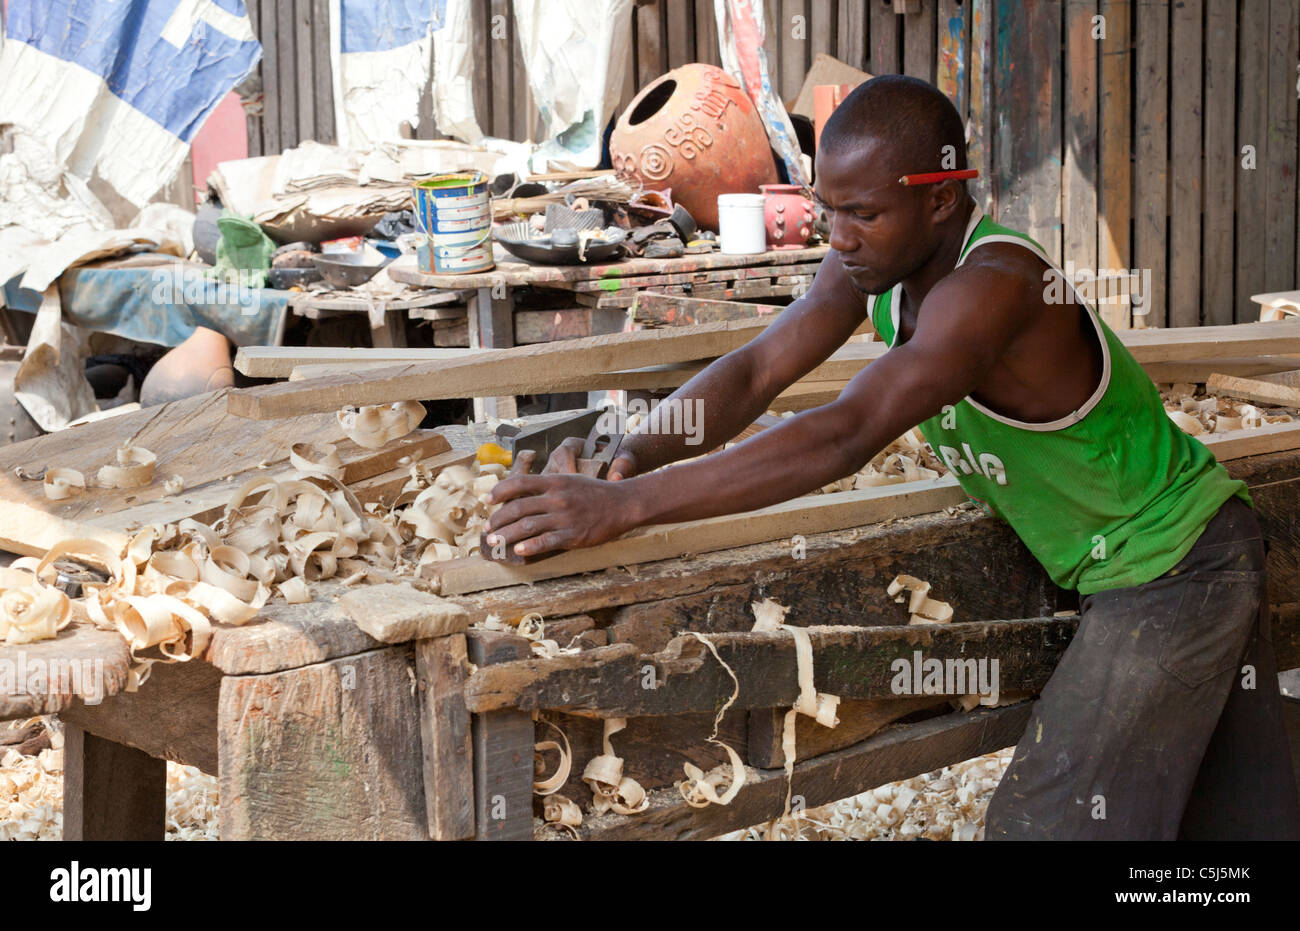 Carpenter planing timber to construct coffin, Accra, Ghana - Stock Image